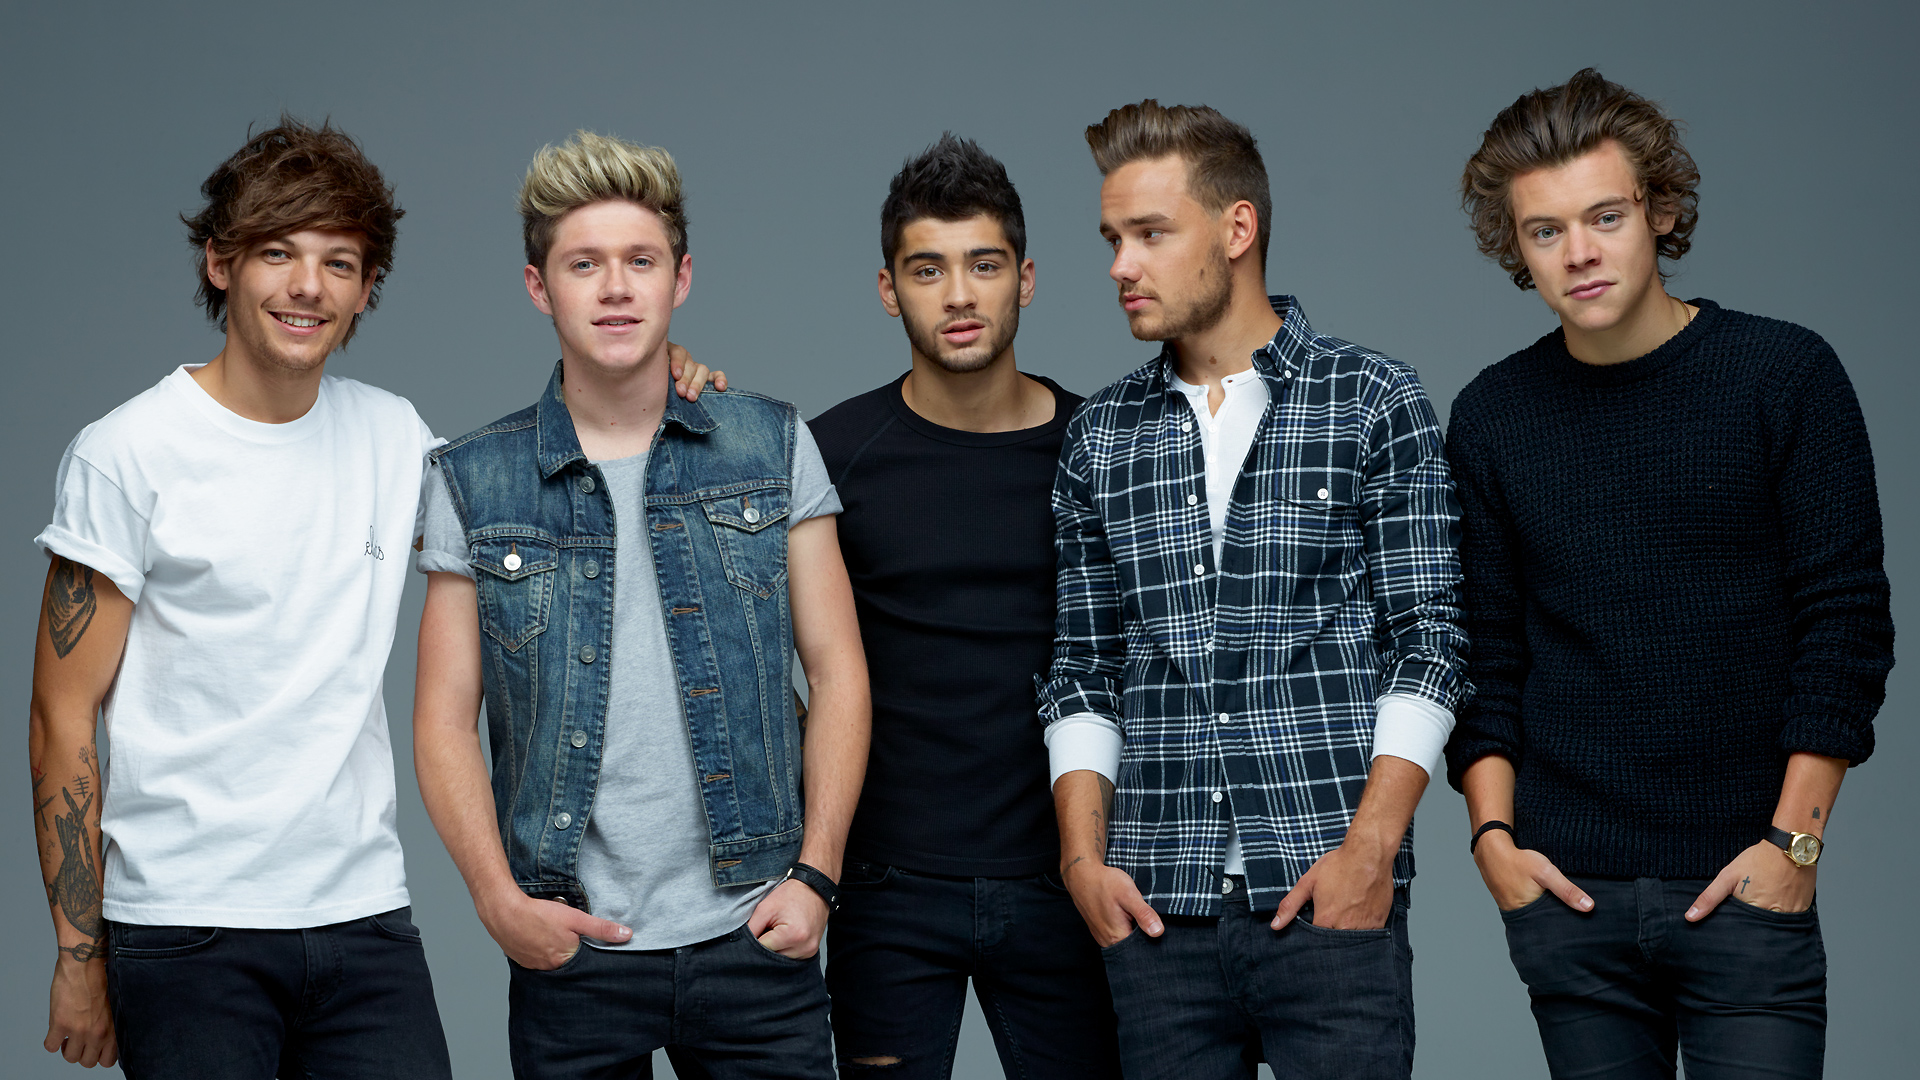 One direction full hd wallpaper and background image 1920x1080 music one direction wallpaper voltagebd Choice Image